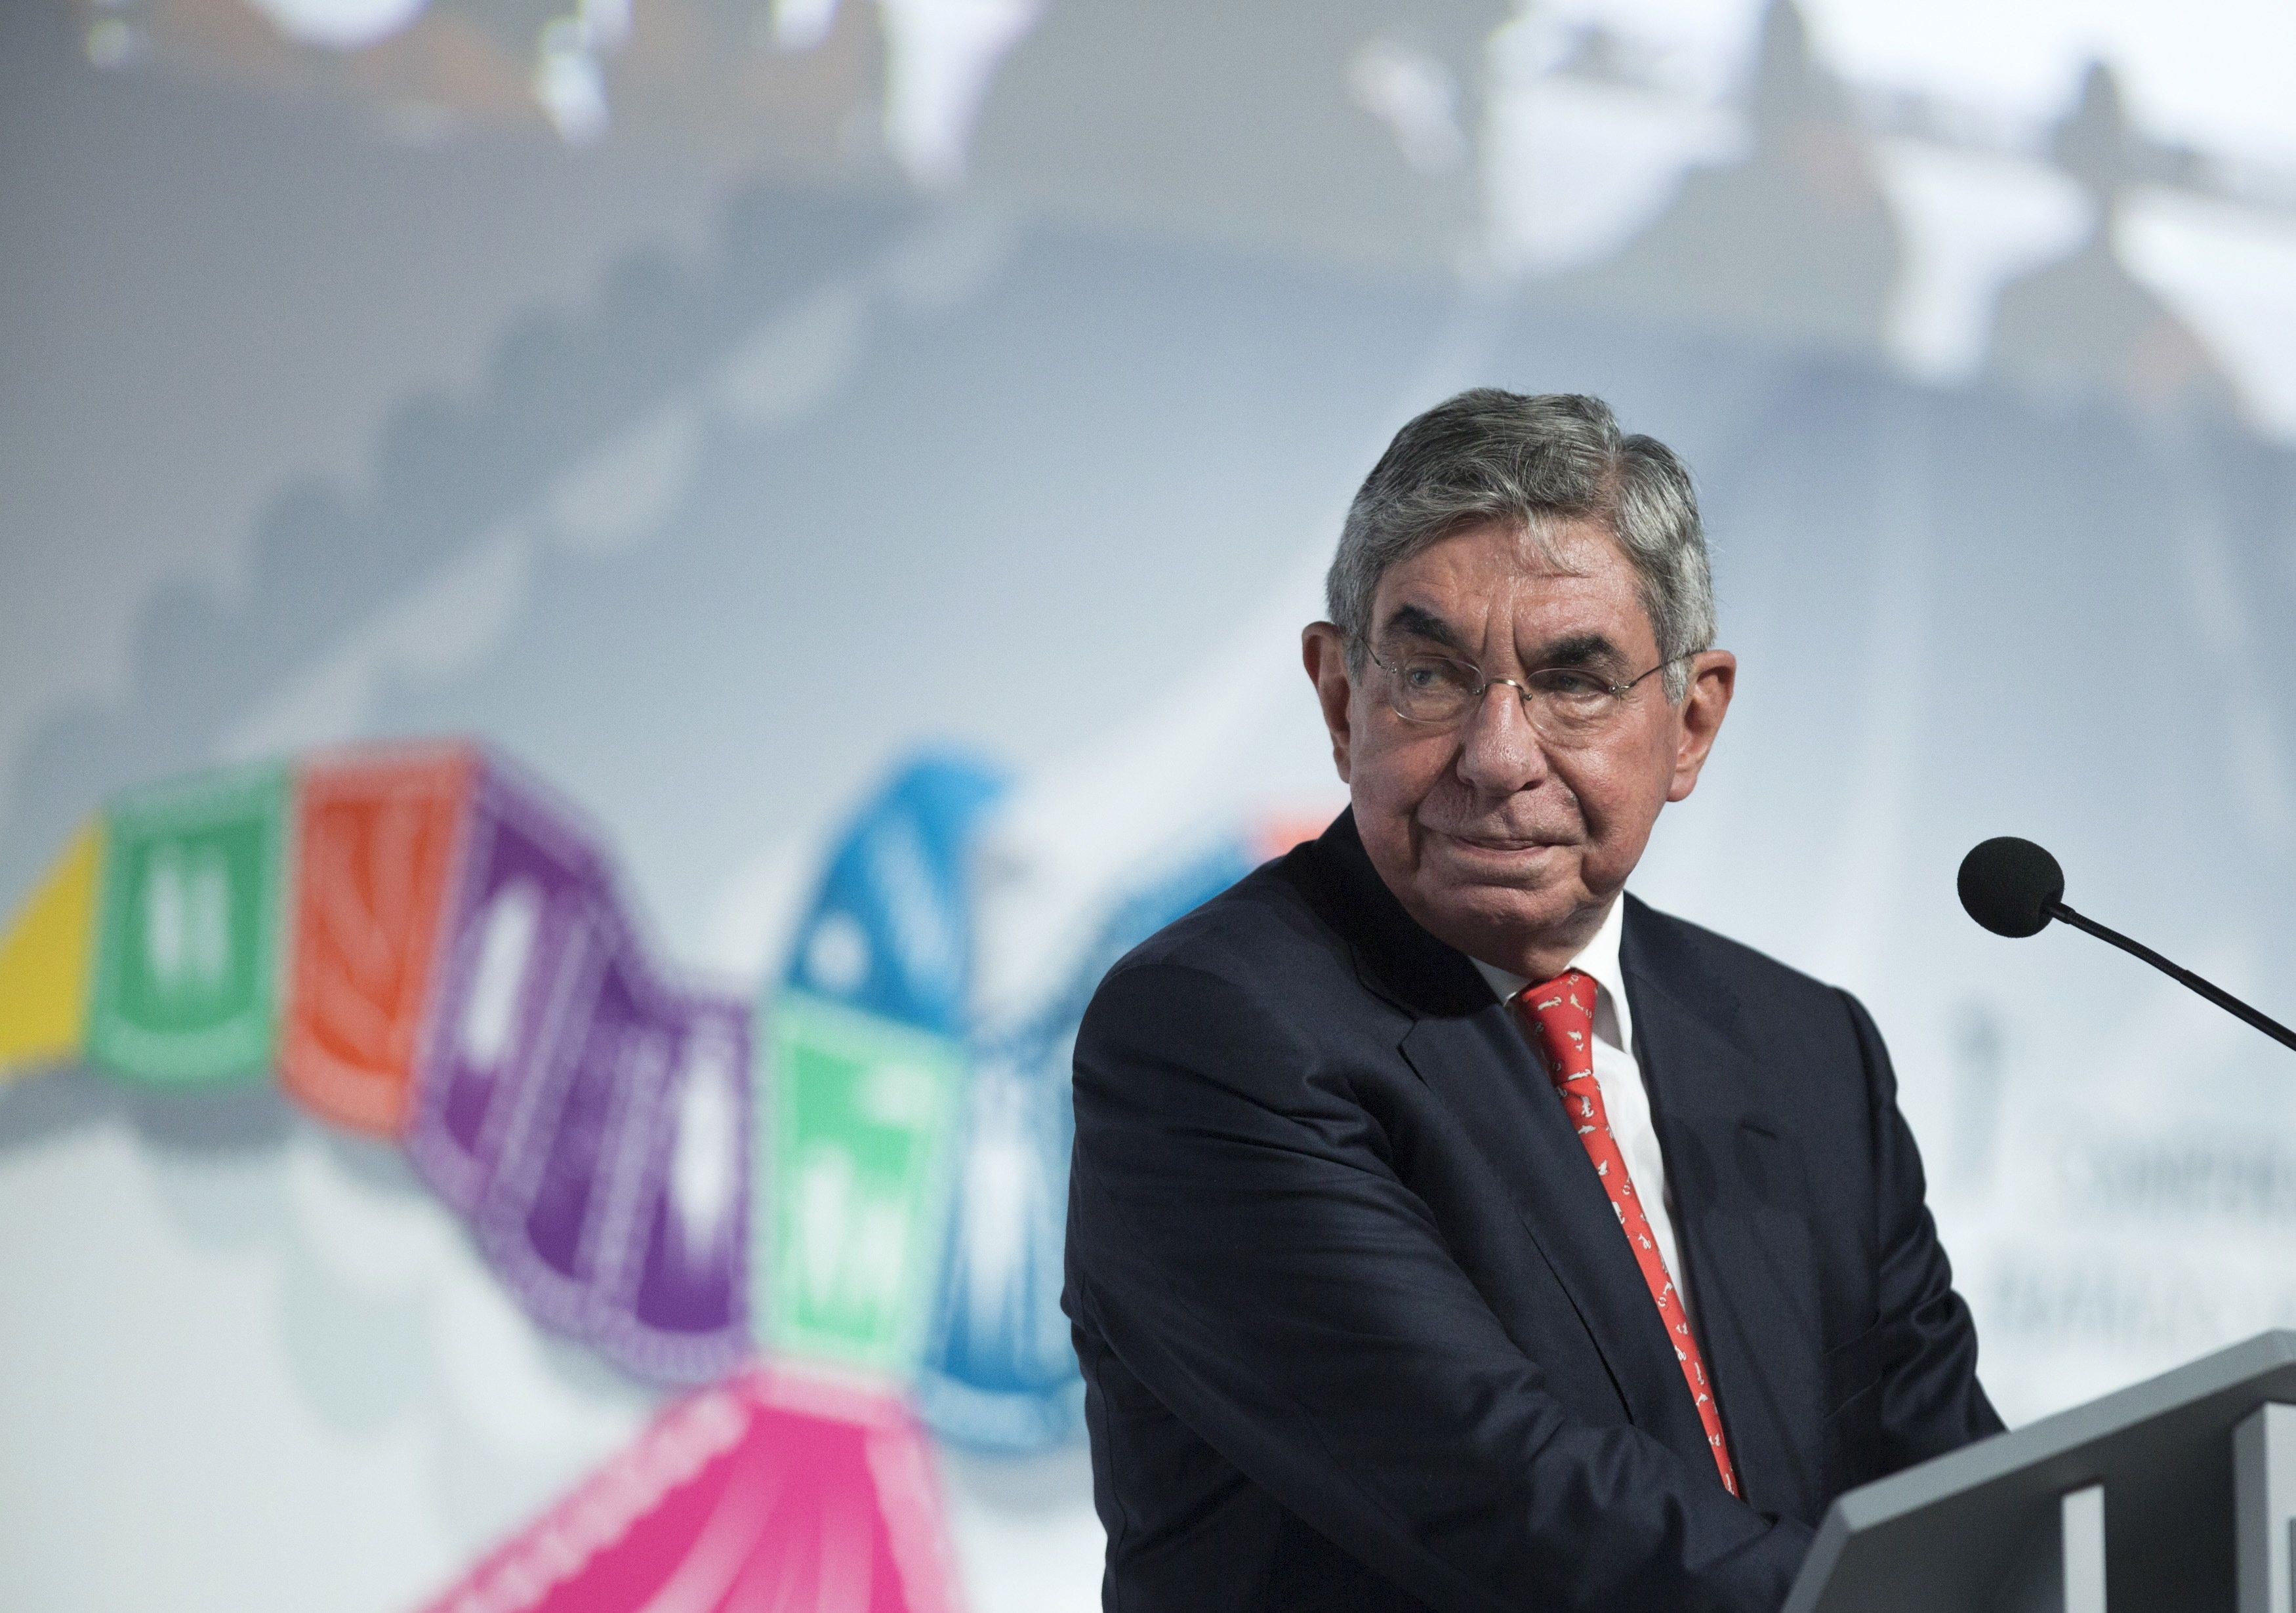 Óscar Arias Sánchez, pictured in 2015, has been accused by at least two women of sexual misconduct.